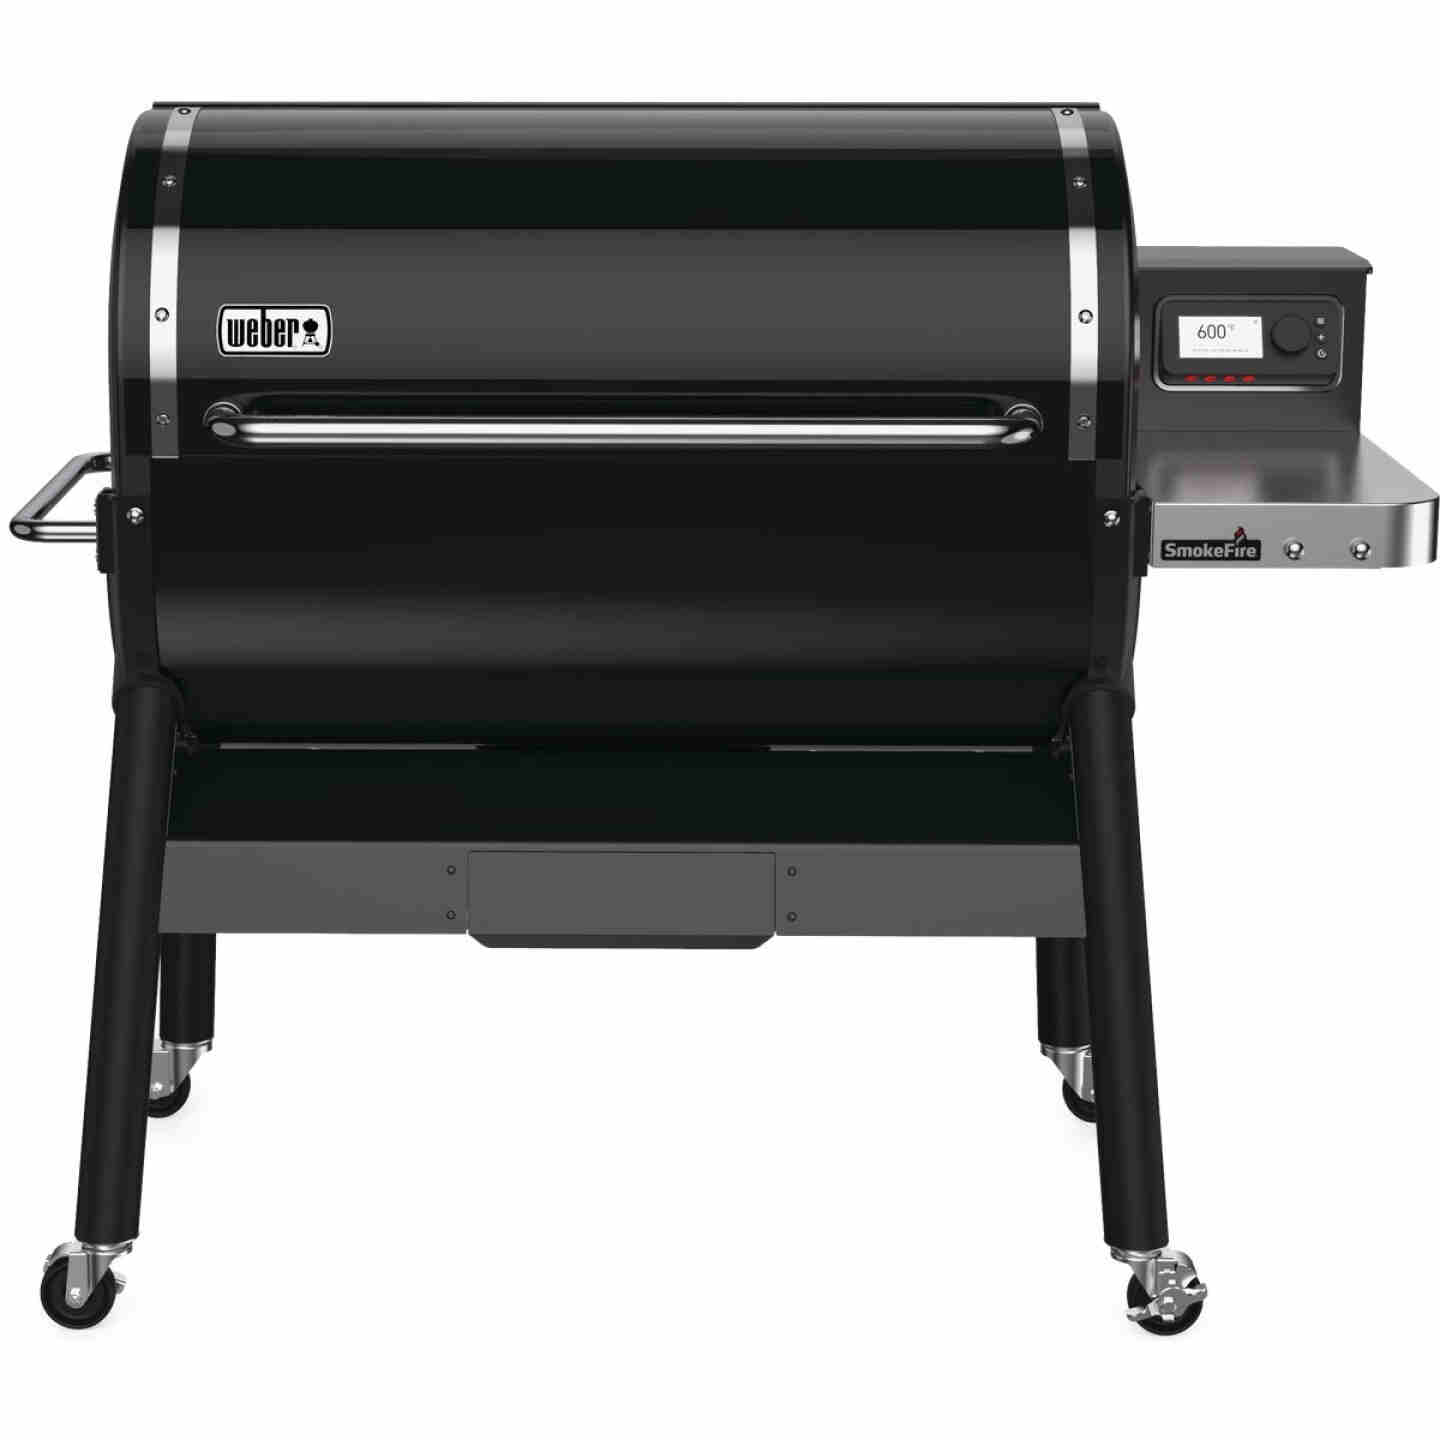 Weber SmokeFire EX6 Black 1008 Sq. In. Wood Pellet Grill Image 1